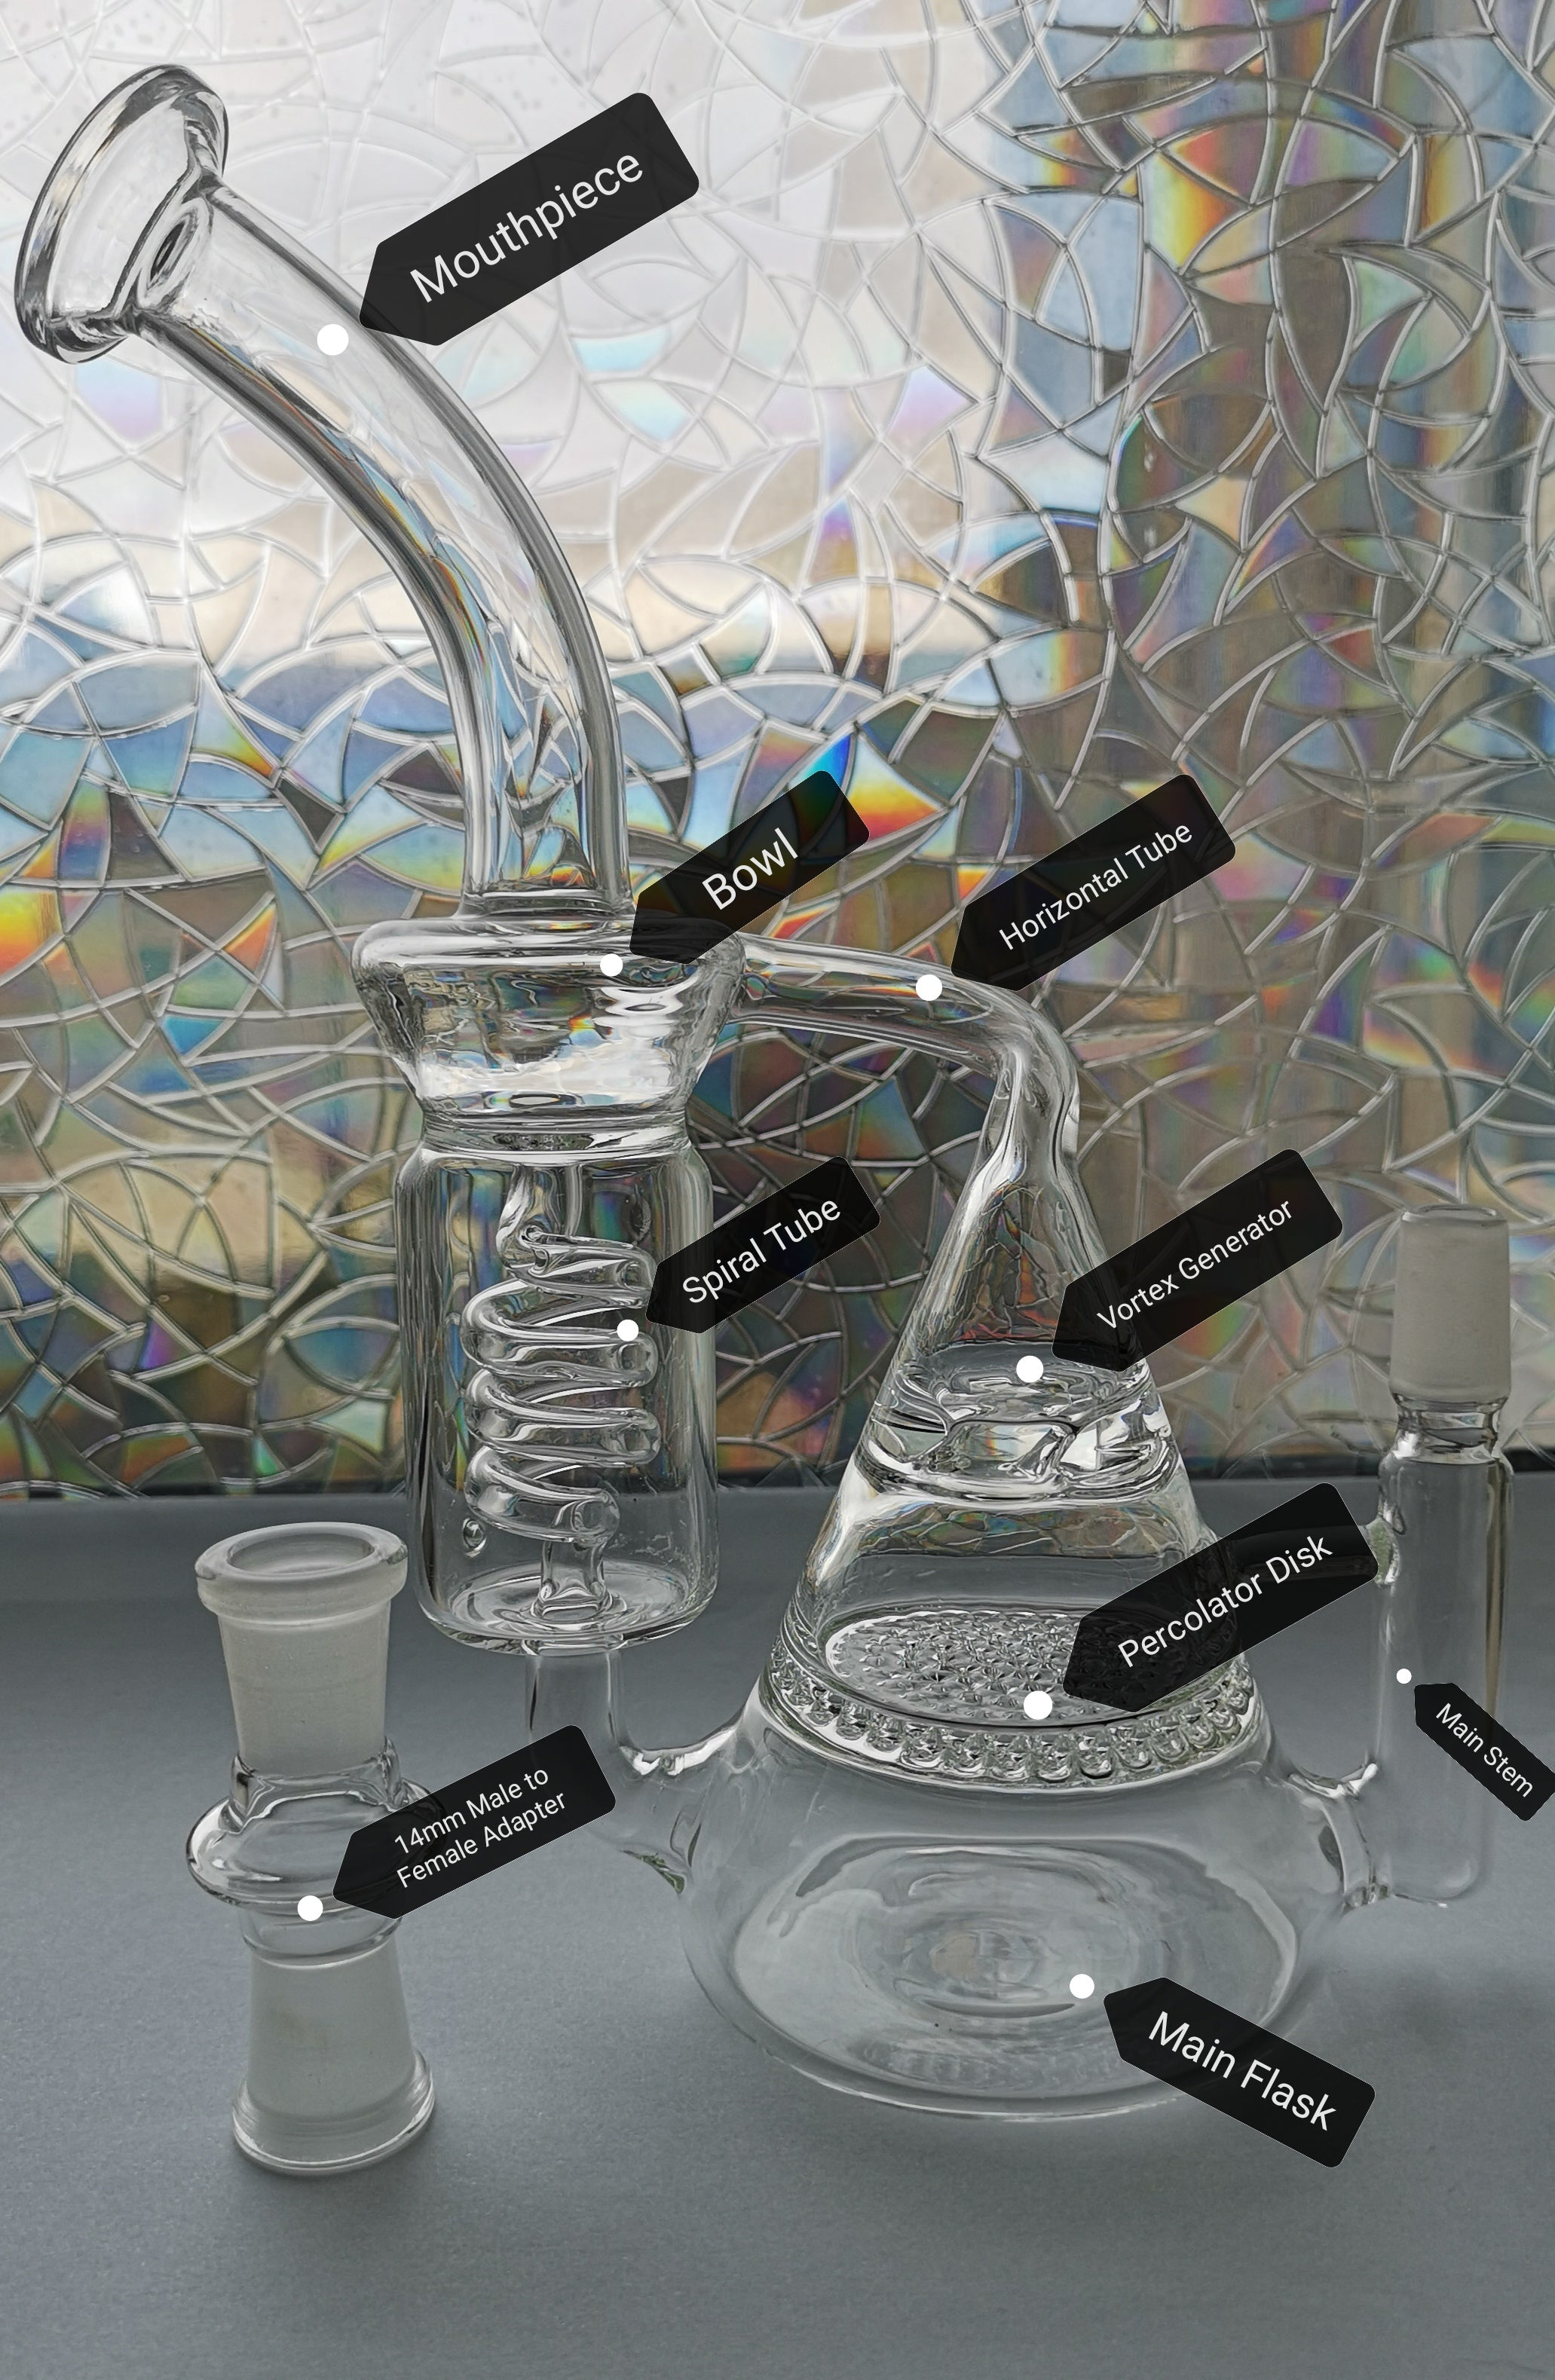 Percolating Vortex Recycling Rig (Vortex Perc Recycler) Labelled imgae